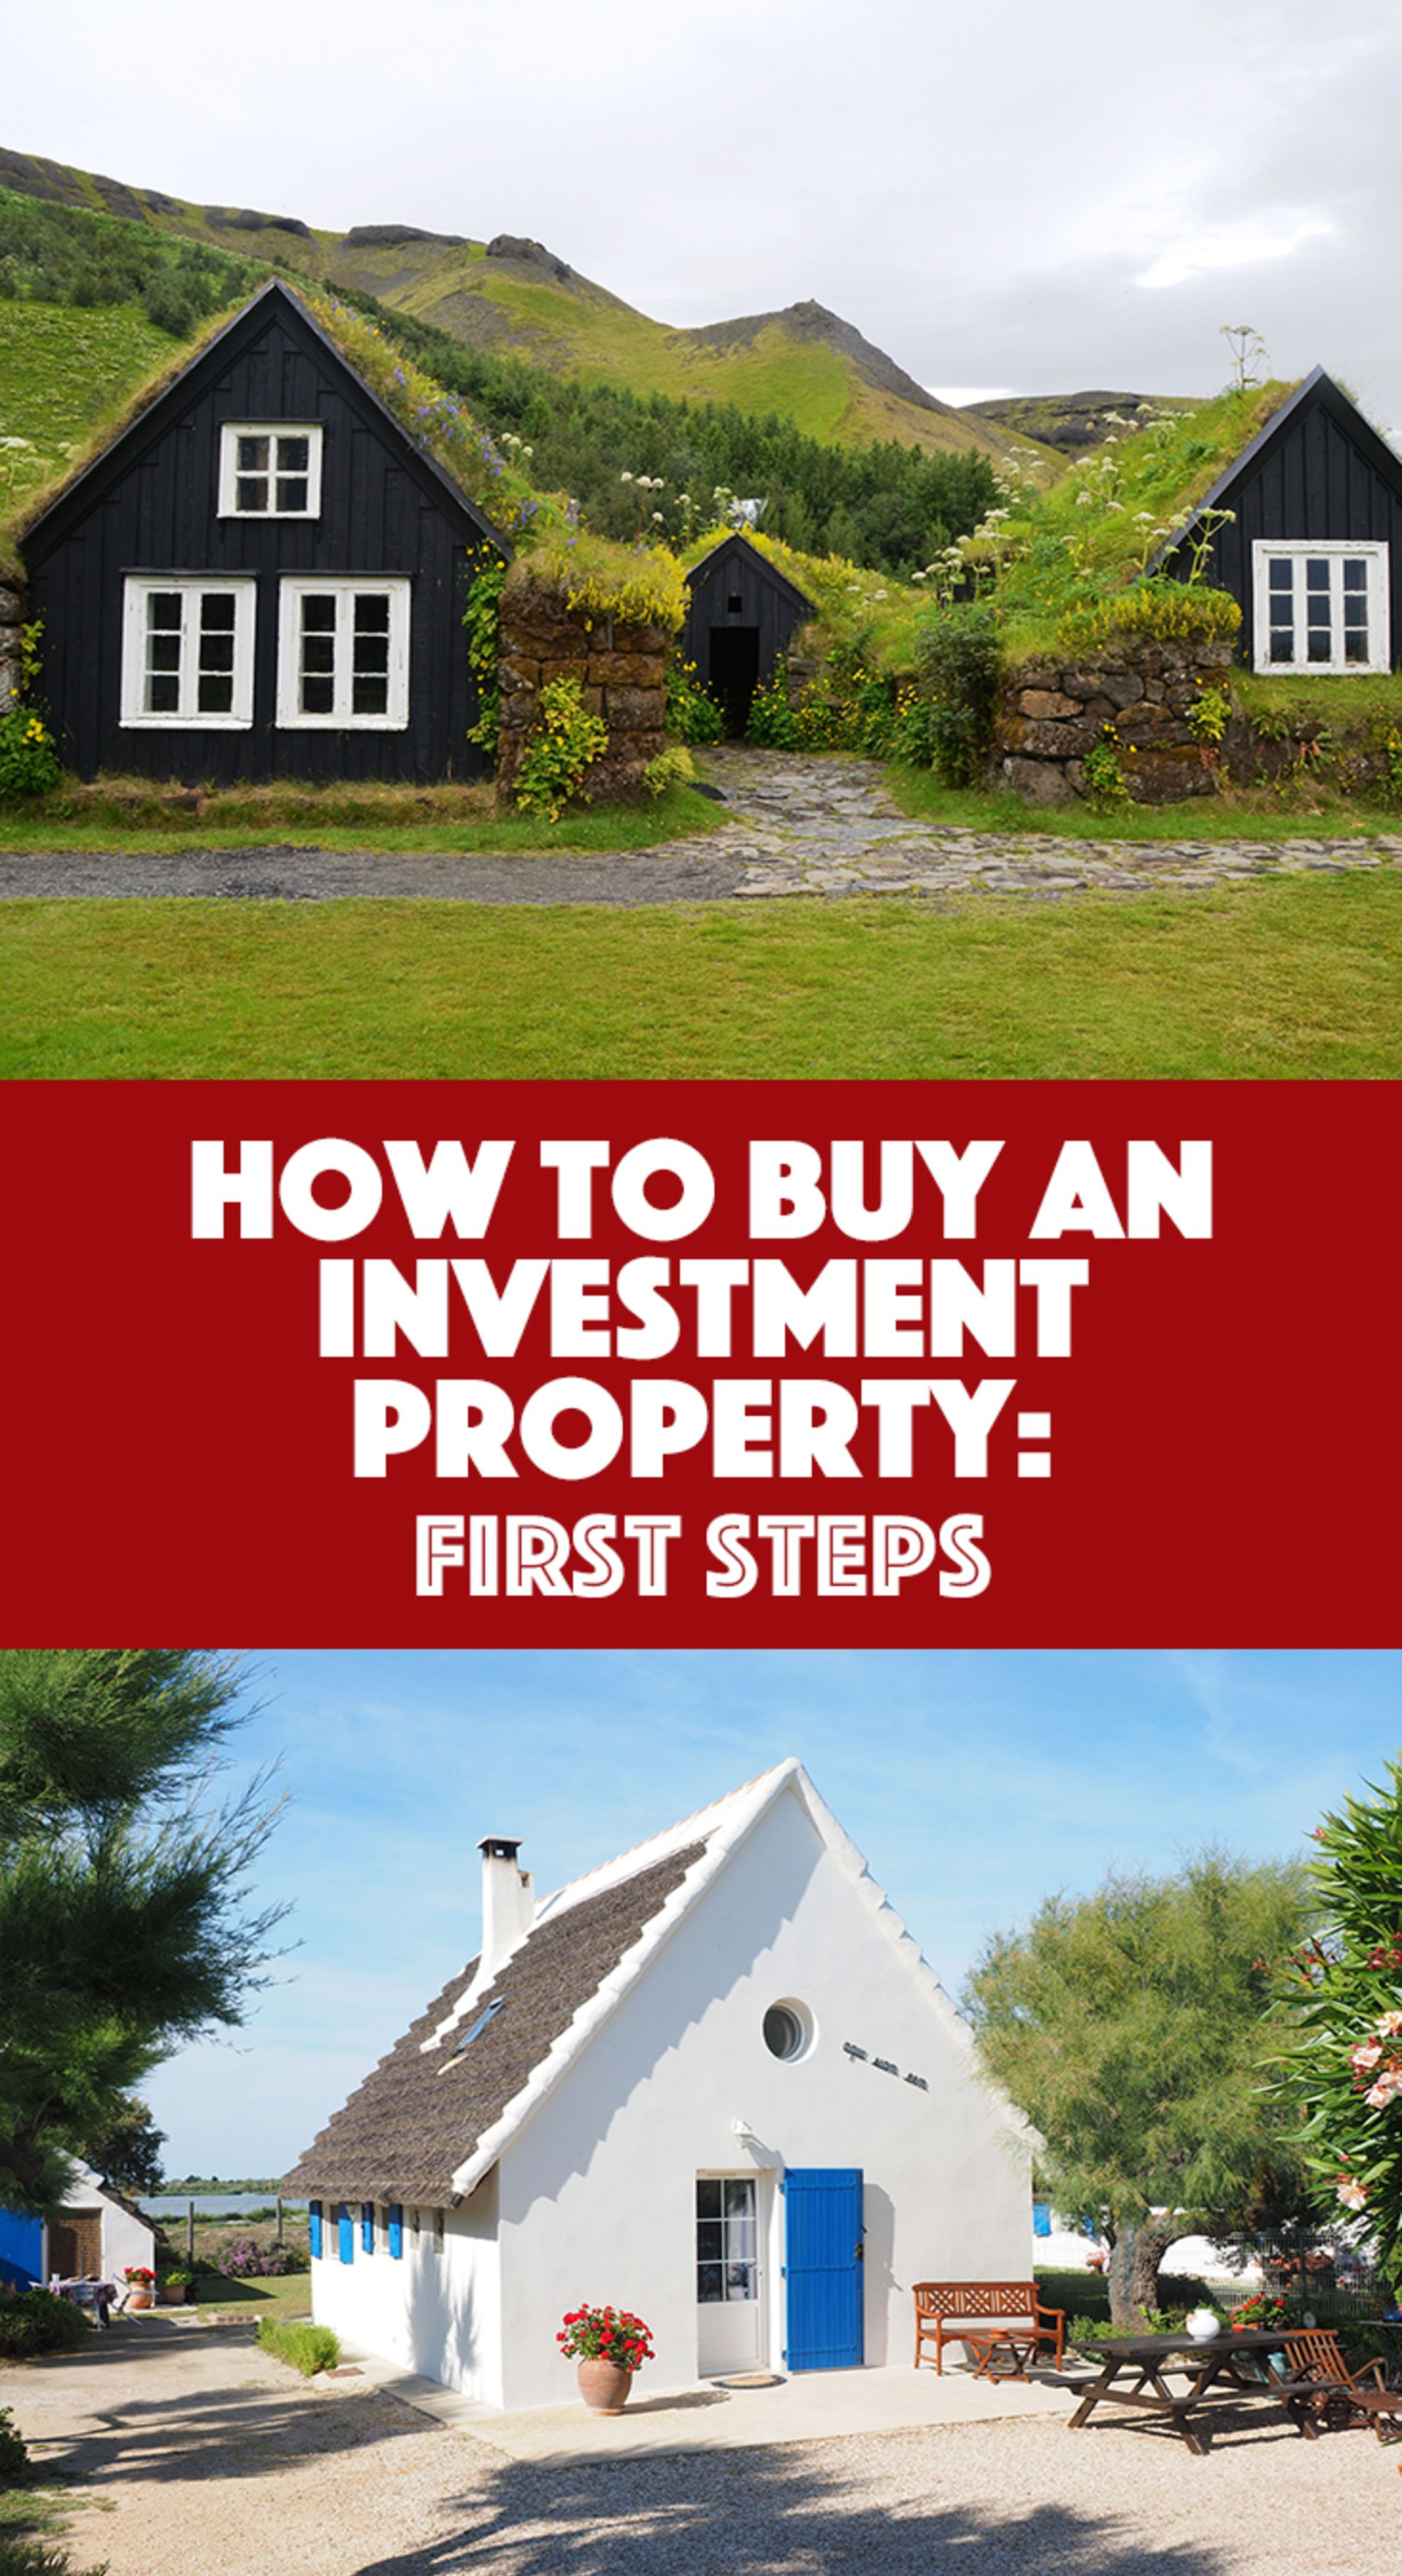 How to Buy an Investment Property: First Steps